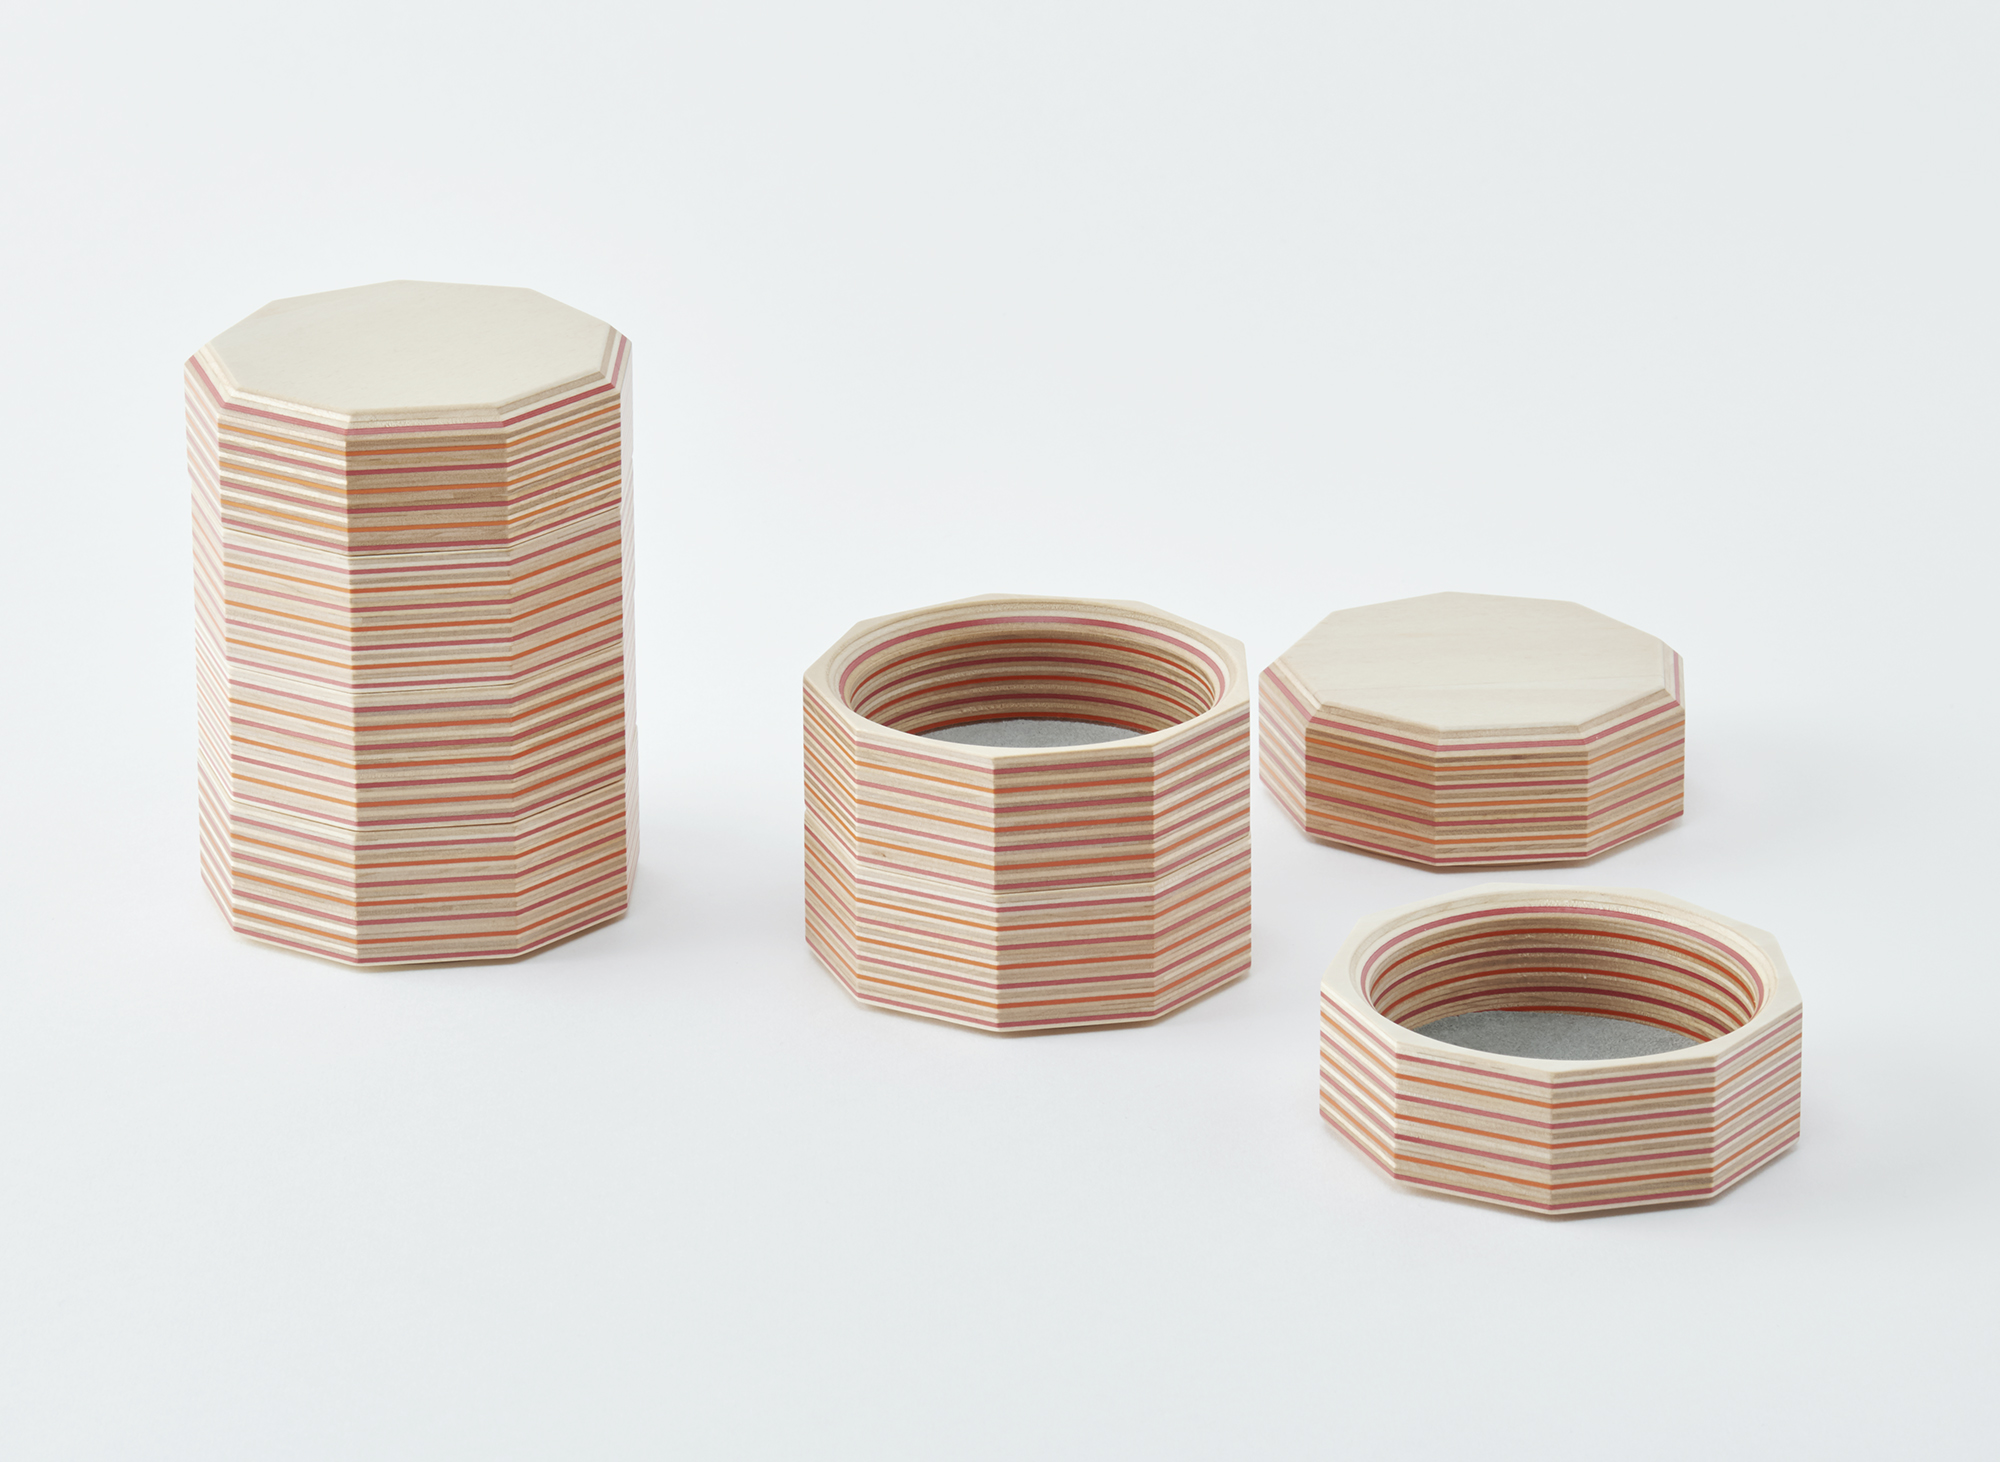 Curator: a nondescript everyday tray made with outstanding craftsmanship and material - The trays feature rhythmical forms and are designed to be stacked, resulting in towers with a striped pattern. It is made with paper-wood, which is a plywood that has colourful and beautiful cross section born of an innovative method involving the lamination of coloured recycled paper and wood grown in Hokkaido.